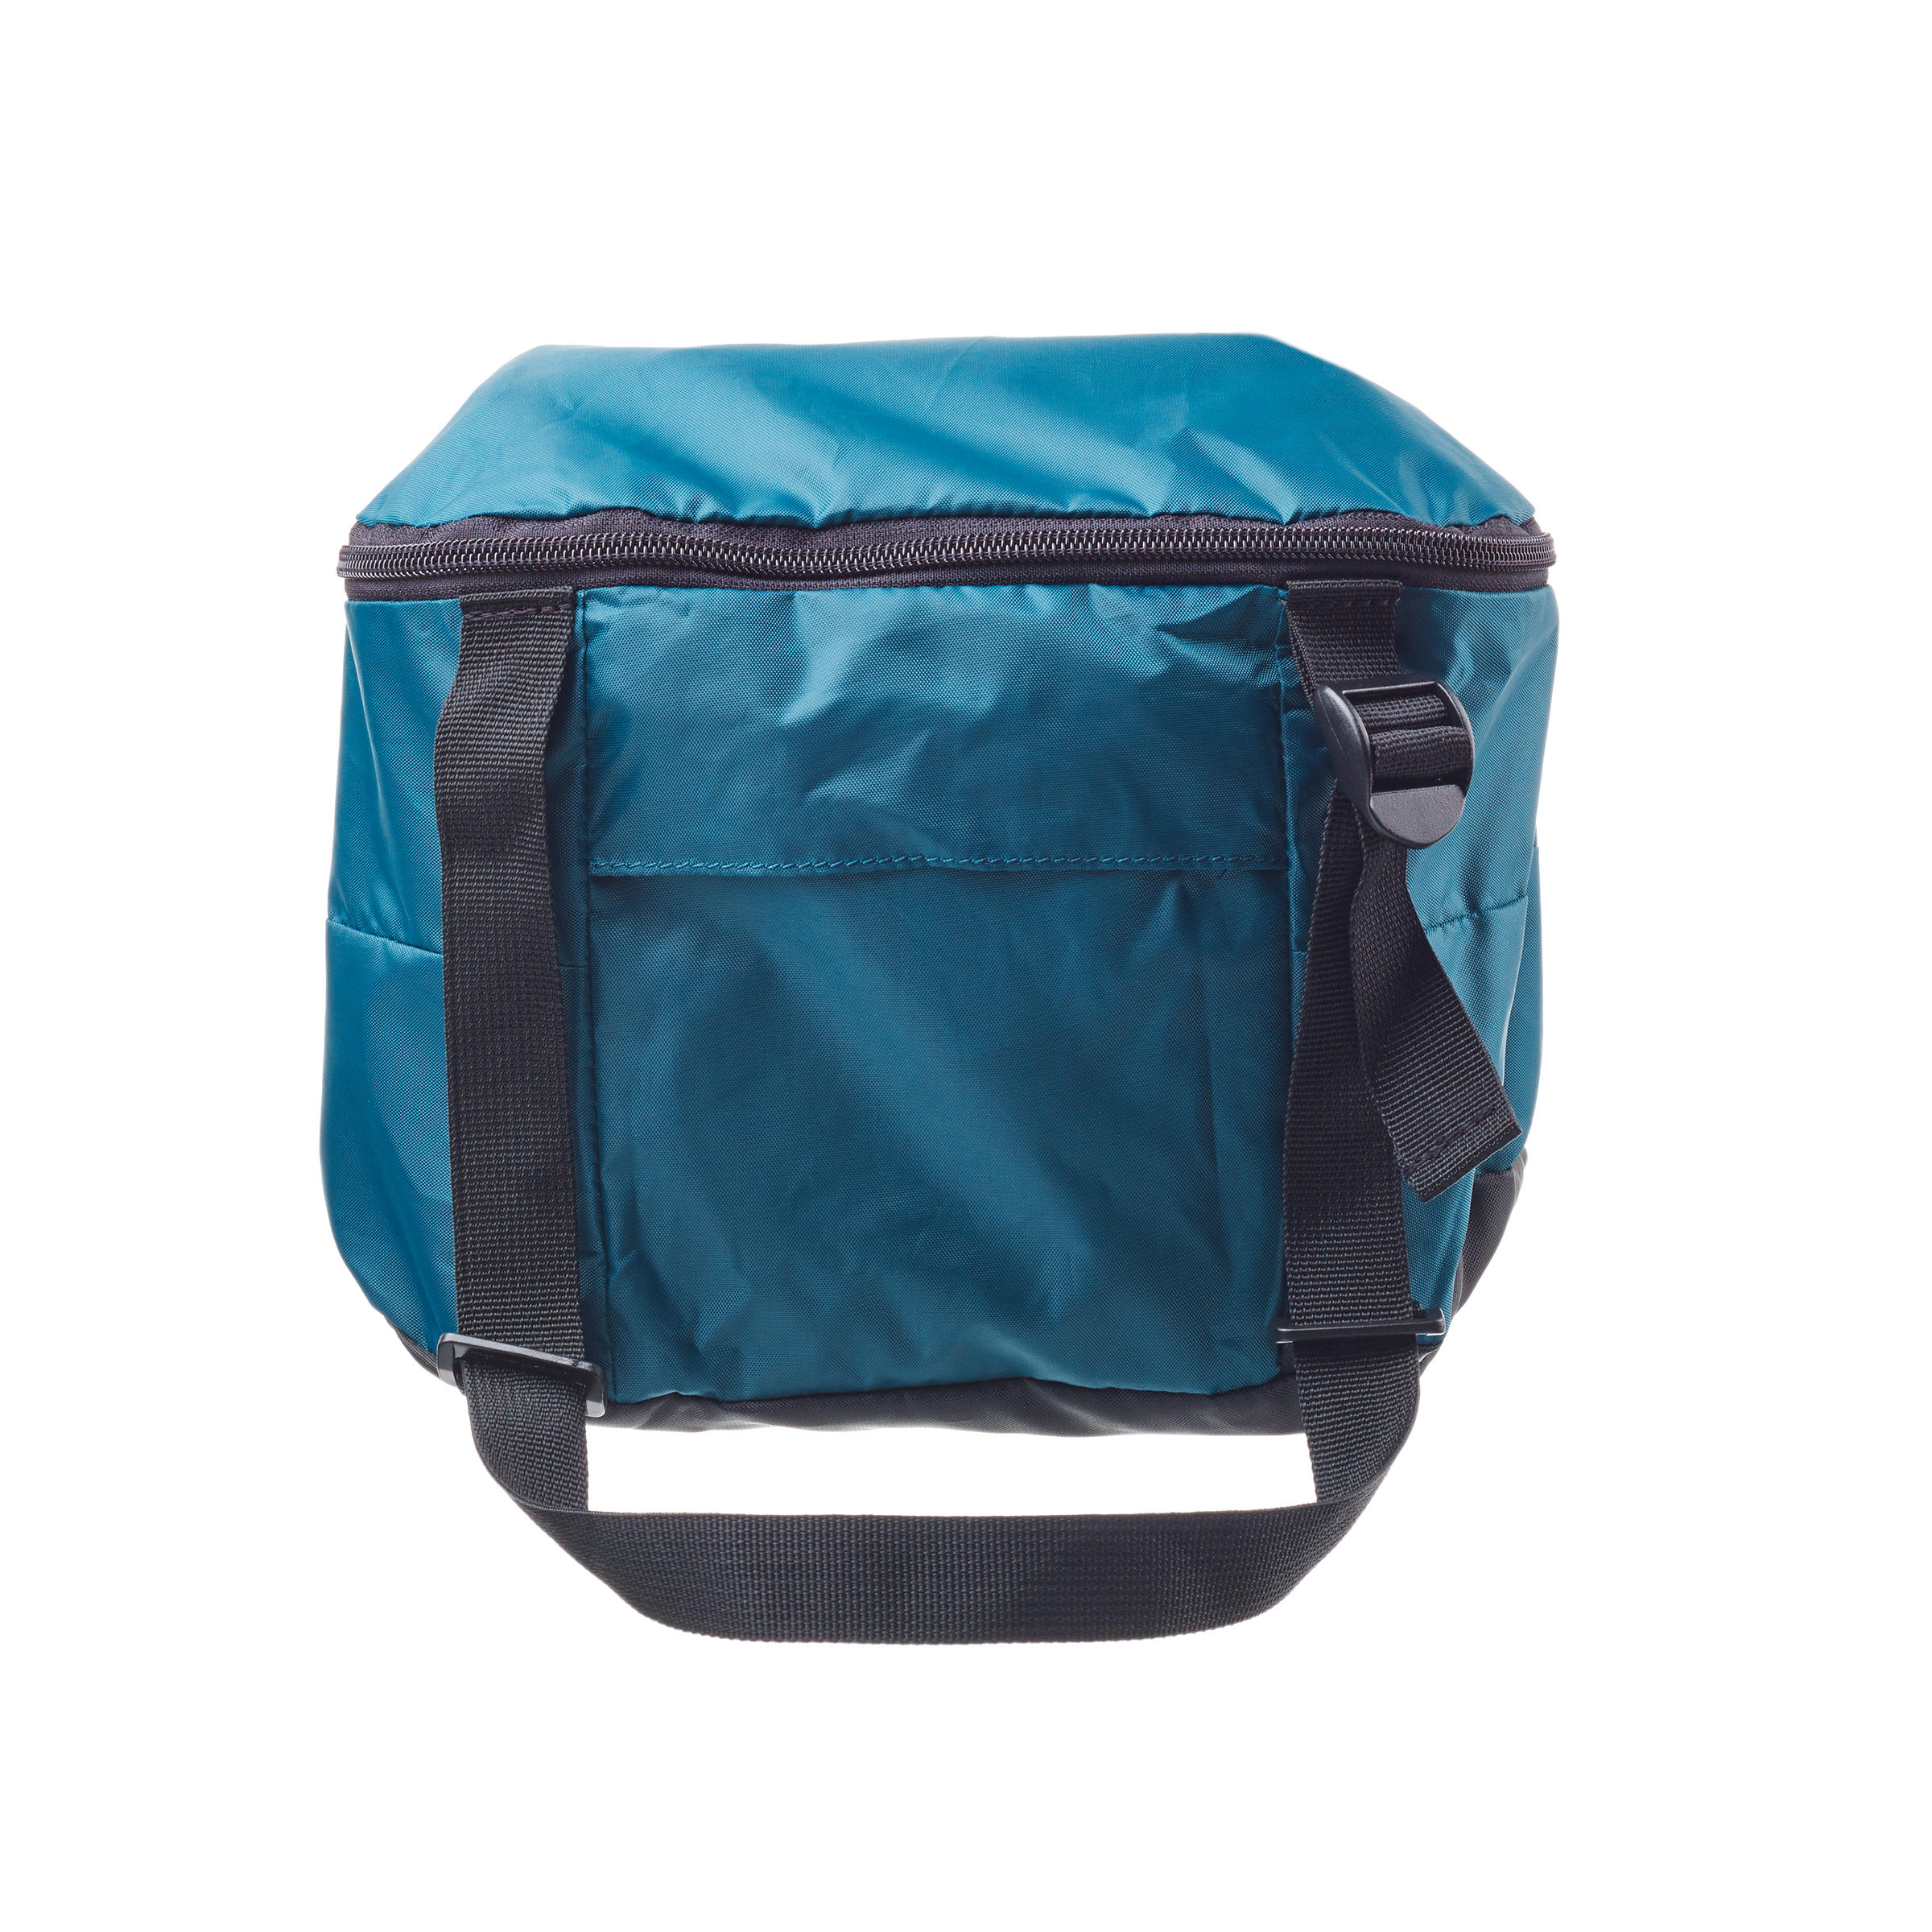 Hiking boot storage bag for sizes 4 to 10.